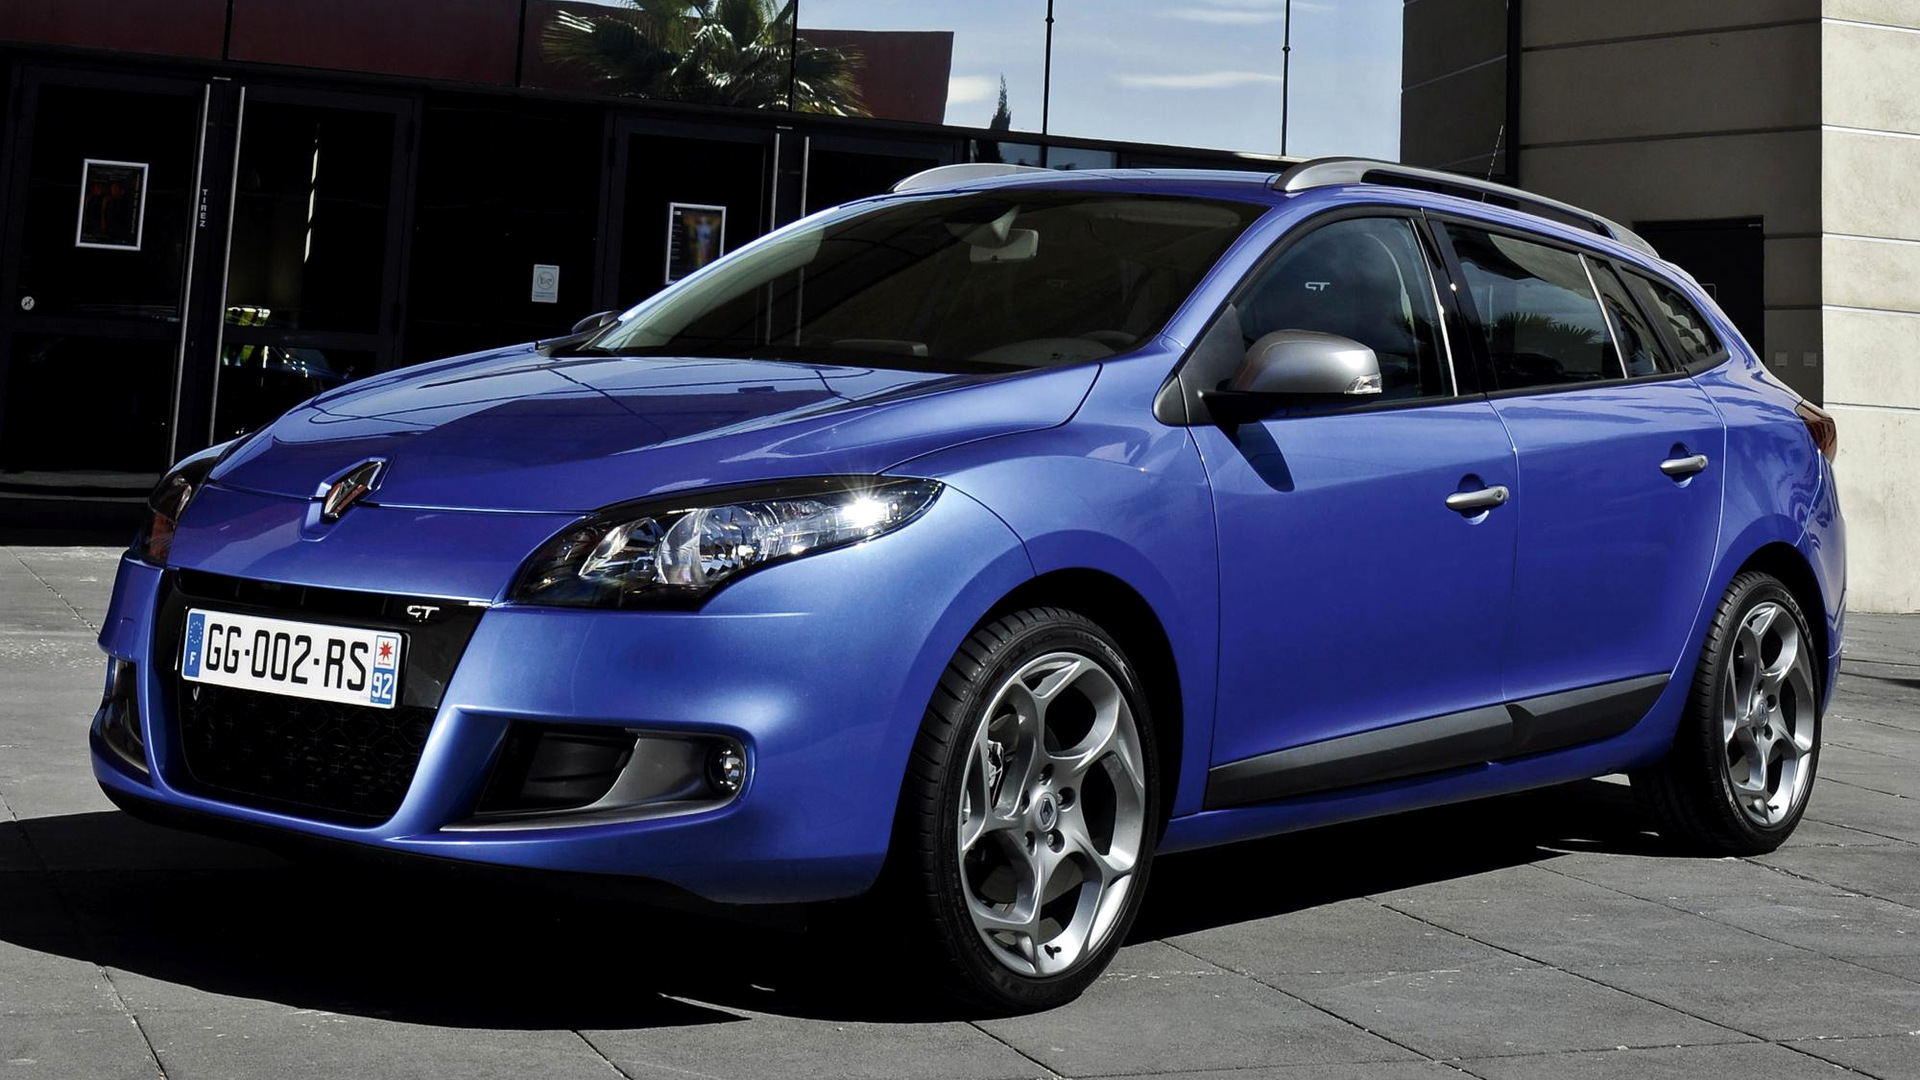 renault megane gt estate 2010 wallpapers and hd images car pixel. Black Bedroom Furniture Sets. Home Design Ideas